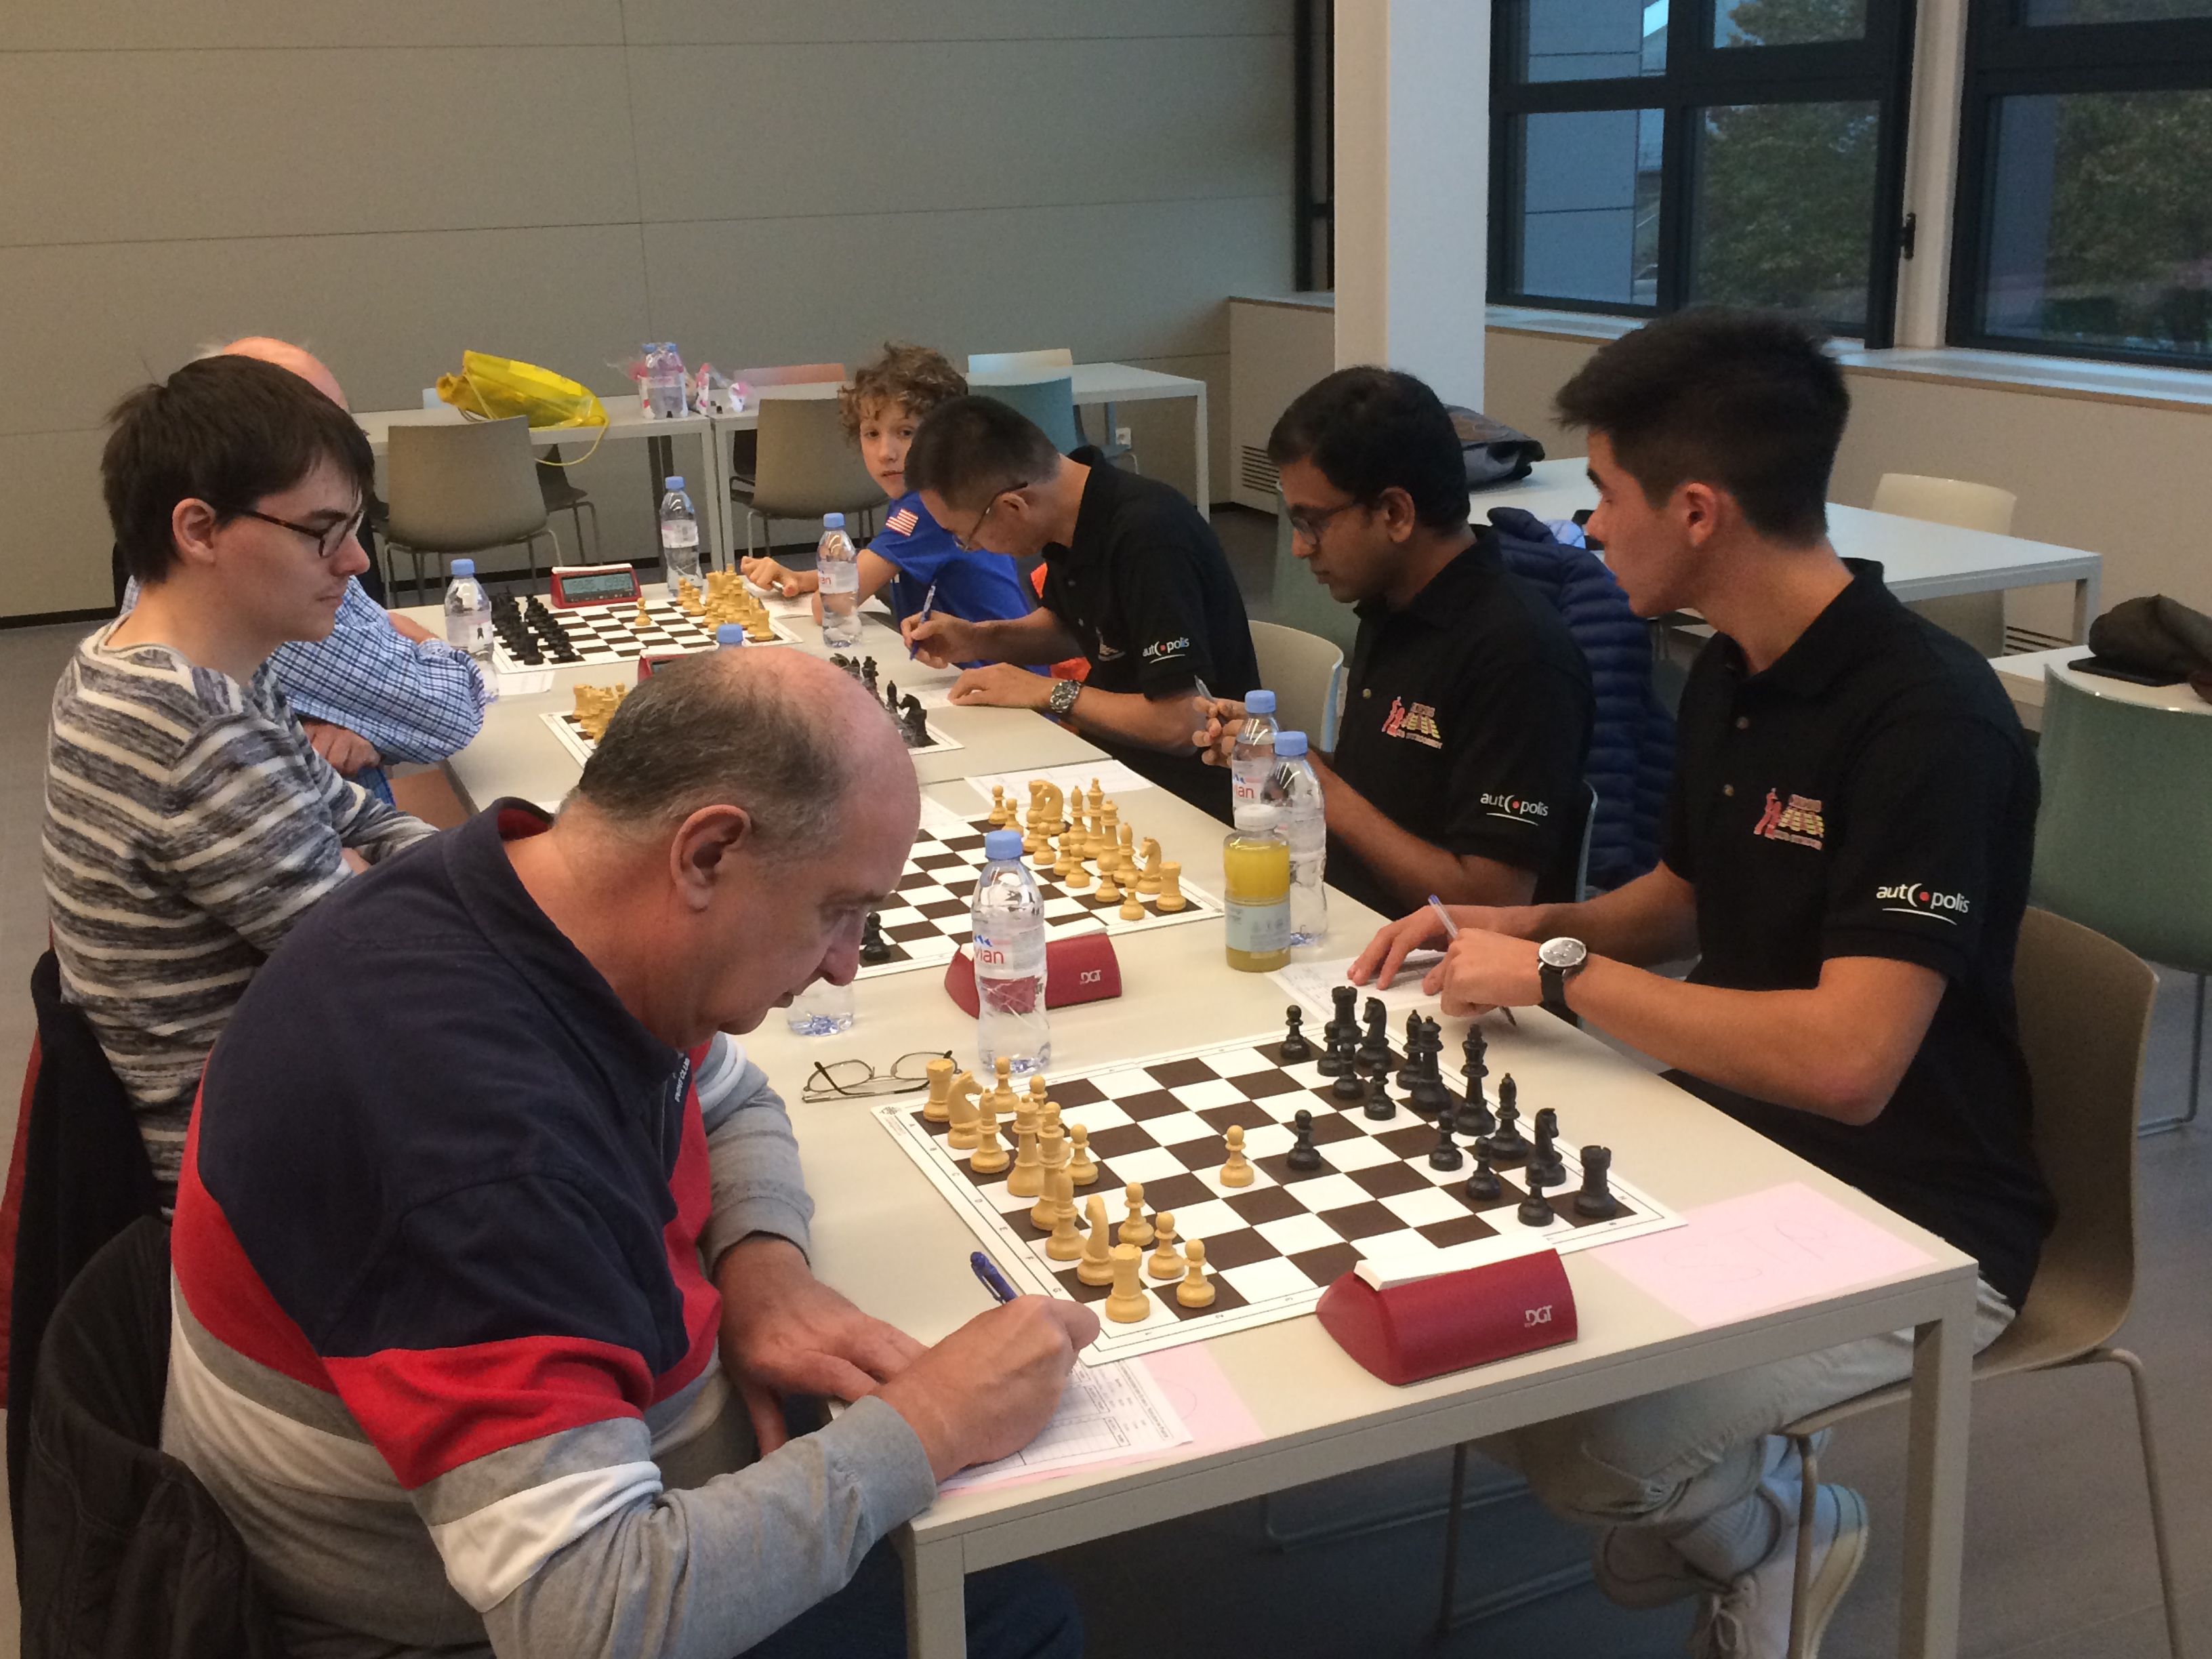 Chess: Strassen wins his 3rd match this season